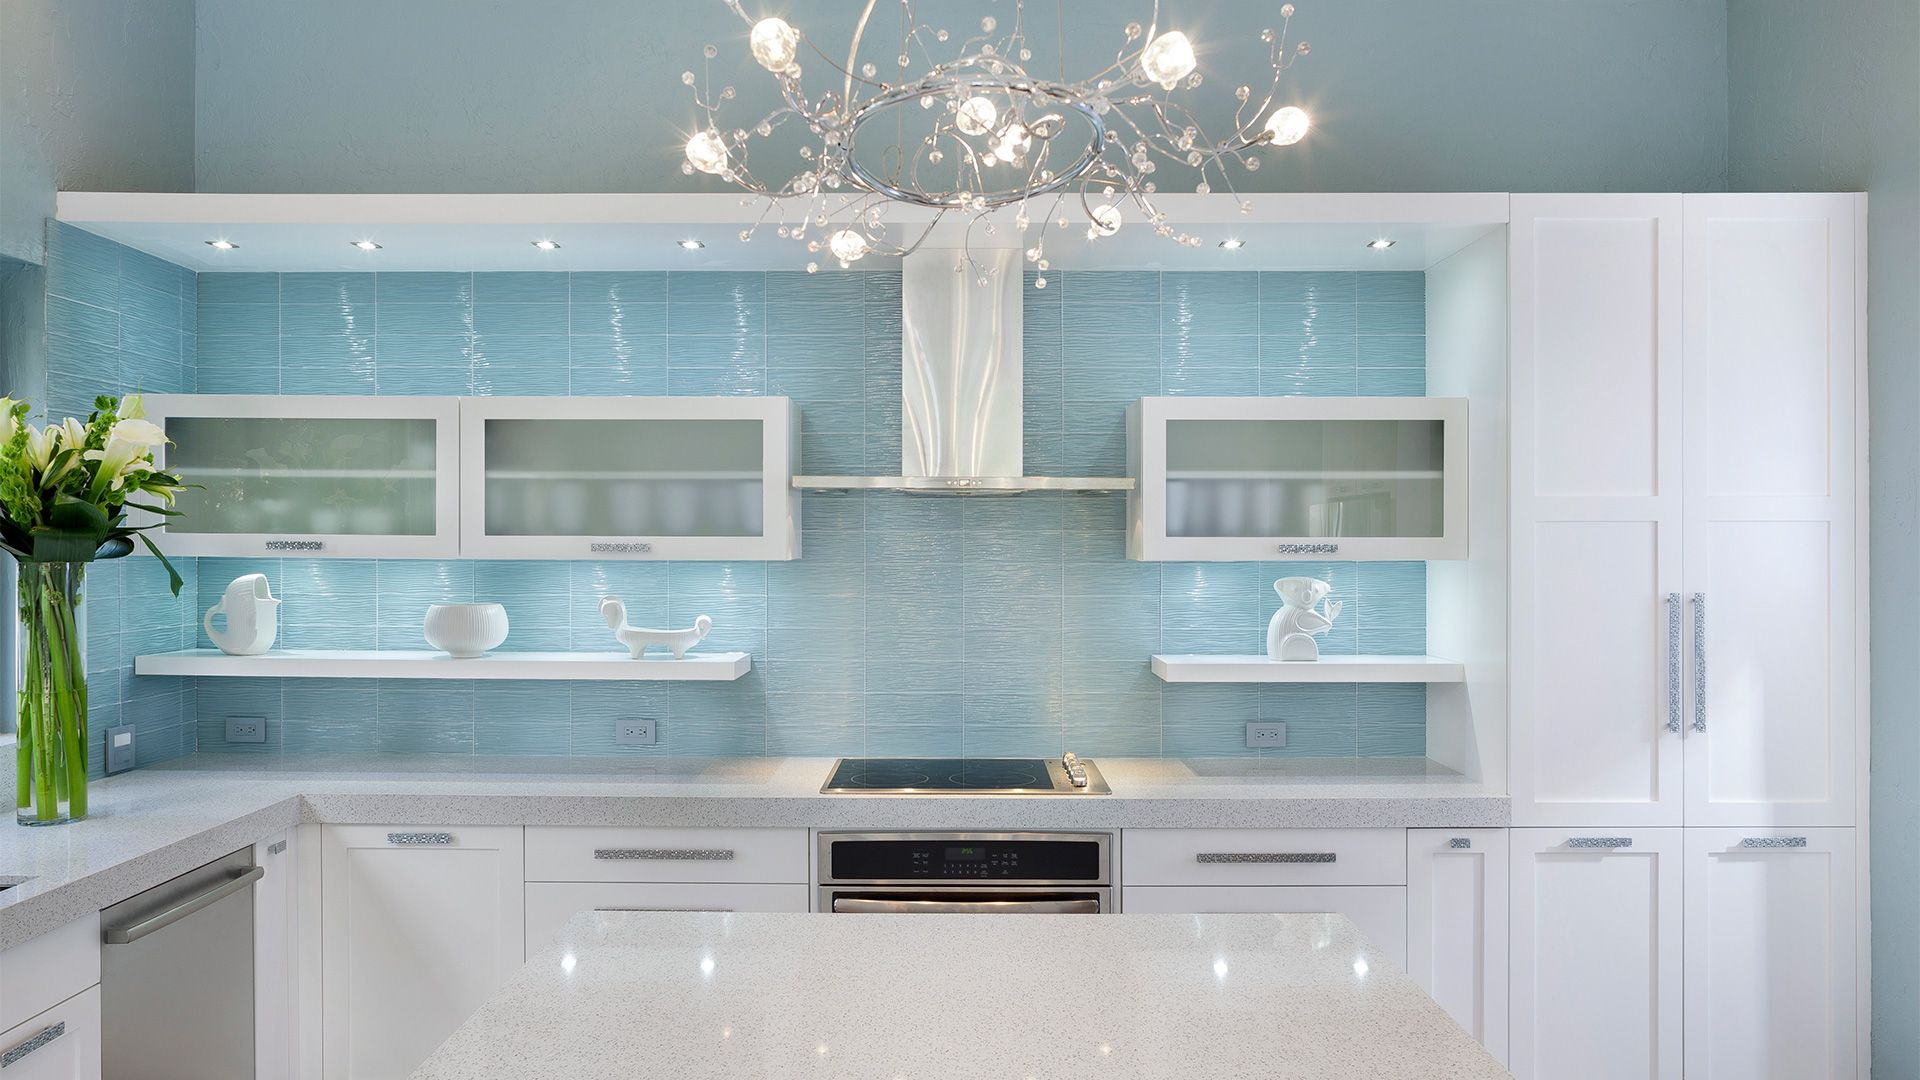 Custom Kitchens And Bathrooms Of South Florida The Place For Kitchens And Baths Boca Raton I Contemporary Kitchen Grey Kitchen Colors Kitchen Room Design